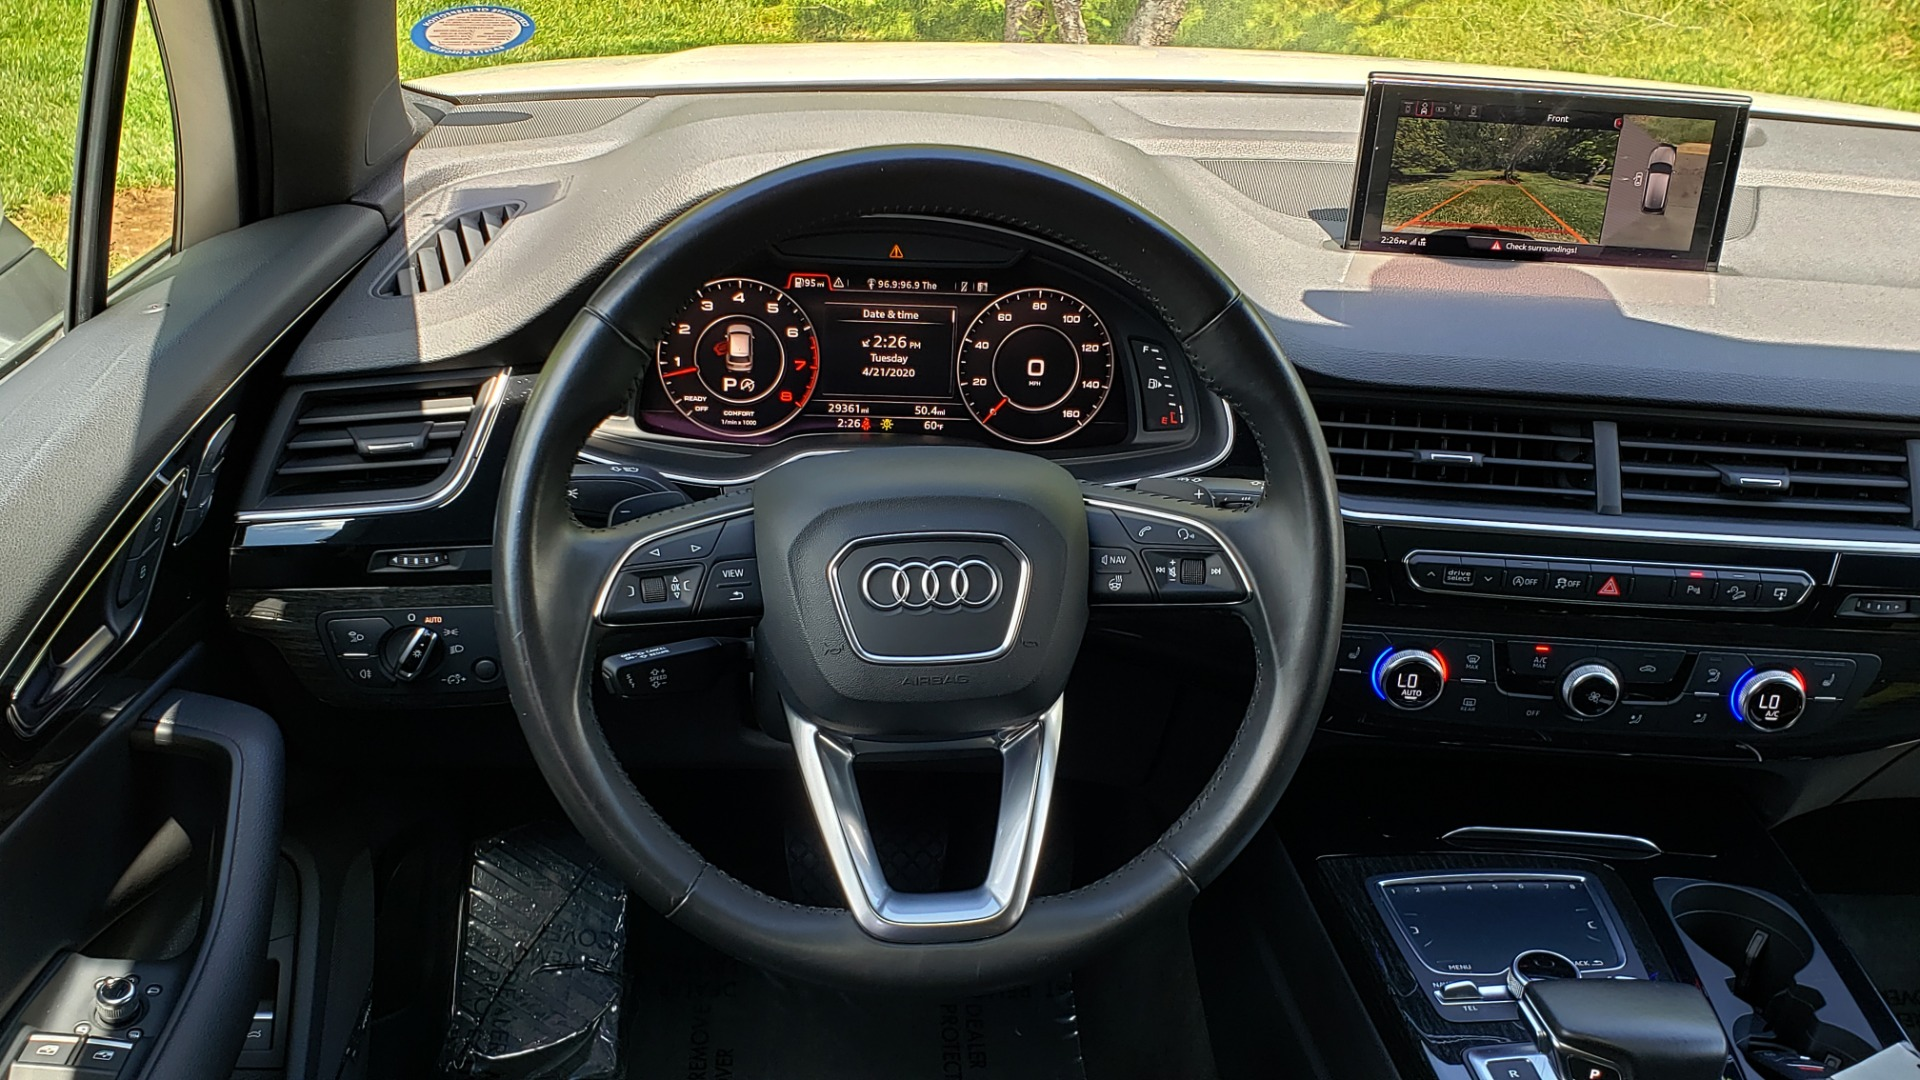 Used 2017 Audi Q7 PREMIUM PLUS / VISION PKG / NAV / PANO-ROOF / 3-ROW / REARVIEW for sale Sold at Formula Imports in Charlotte NC 28227 38